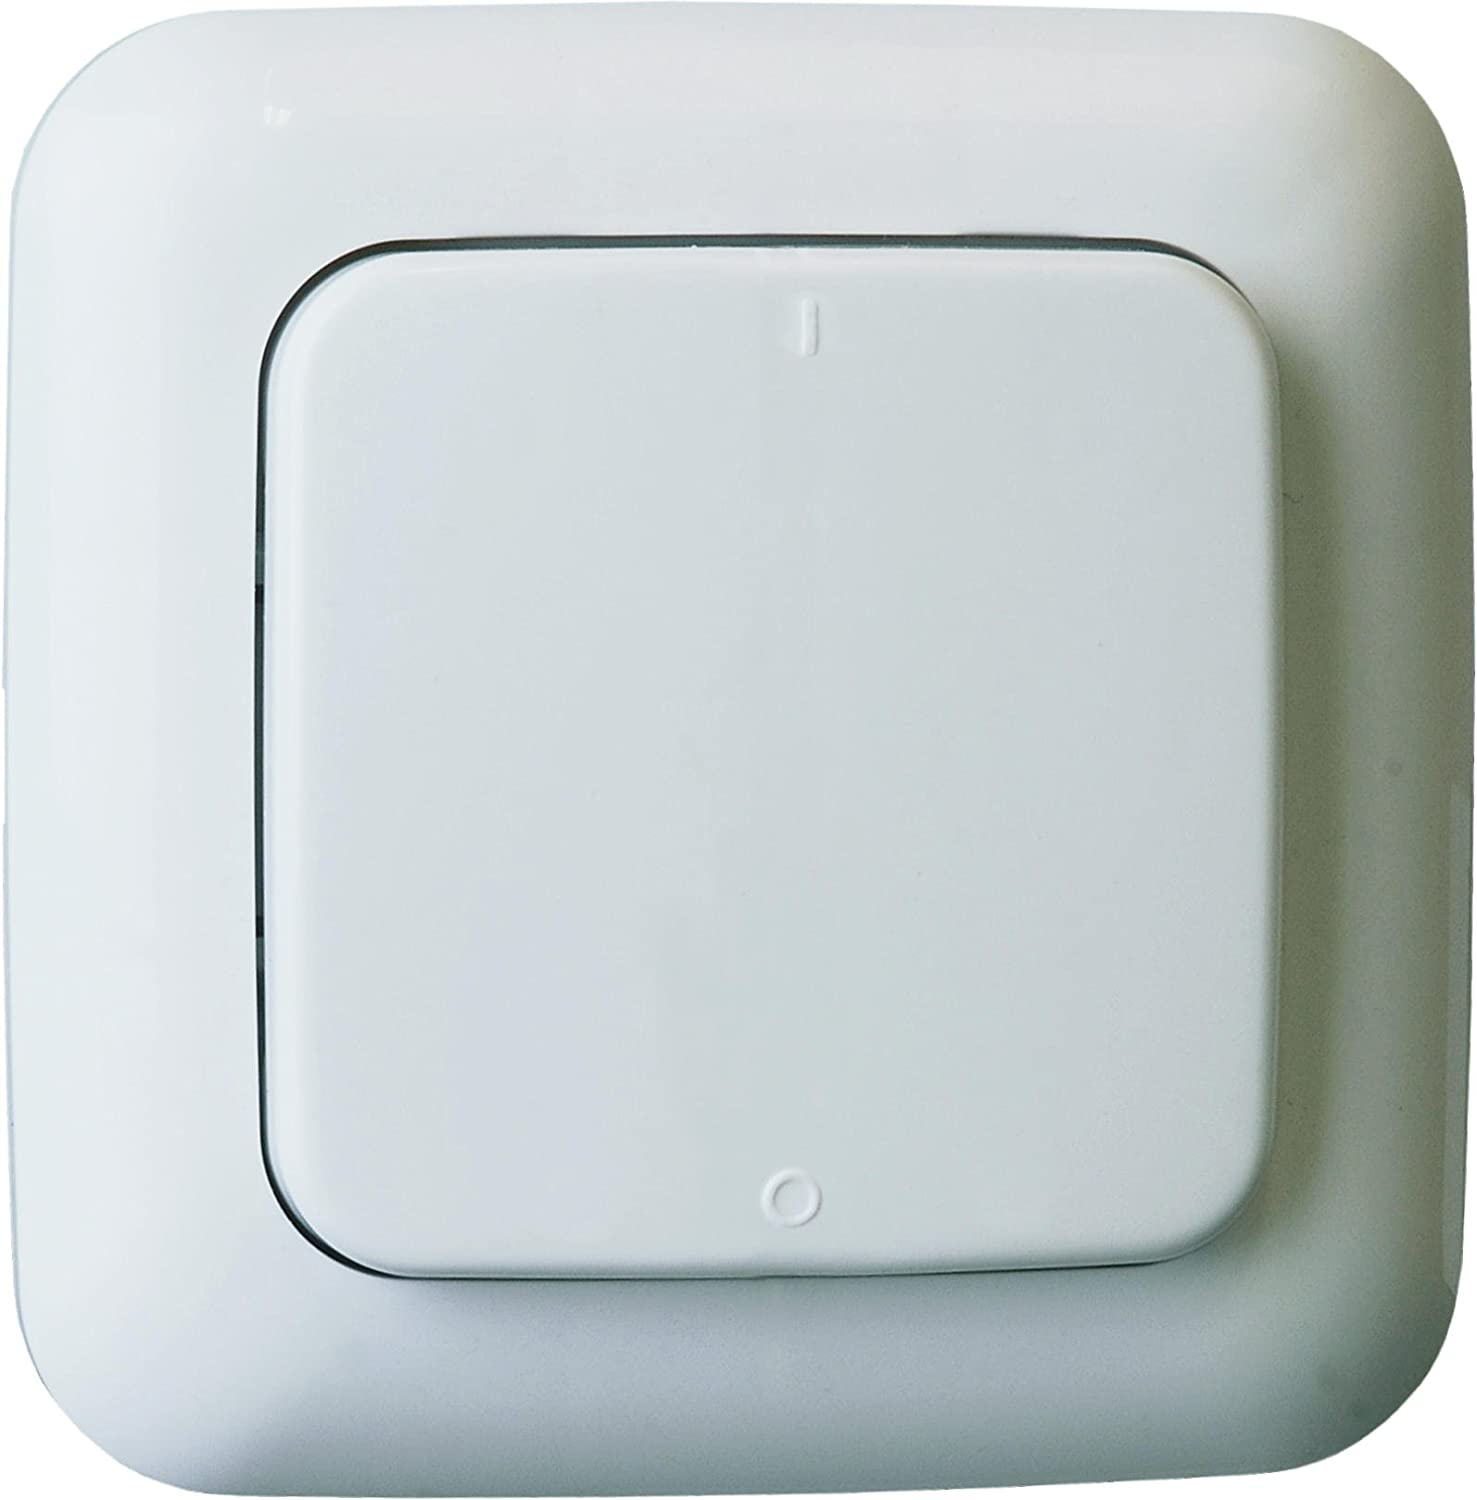 Home Easy HE842 - Interruptor de pared con función de mando a distancia